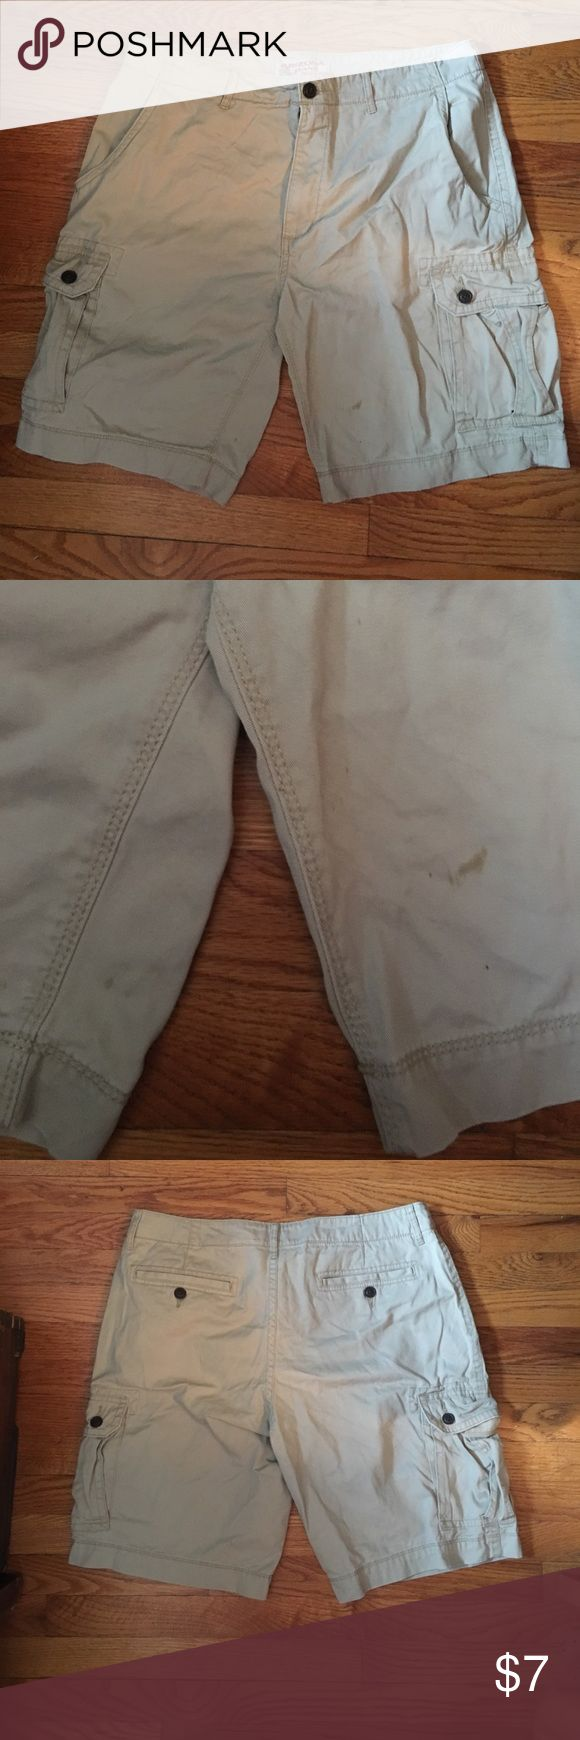 Men's Khaki Shorts Cargo style shorts, with zipper and button closure; small stain on front of shorts - would likely come out with stain remover. Worn multiple times, but still on good condition (minus small stain). Arizona Jean Company Shorts Cargo